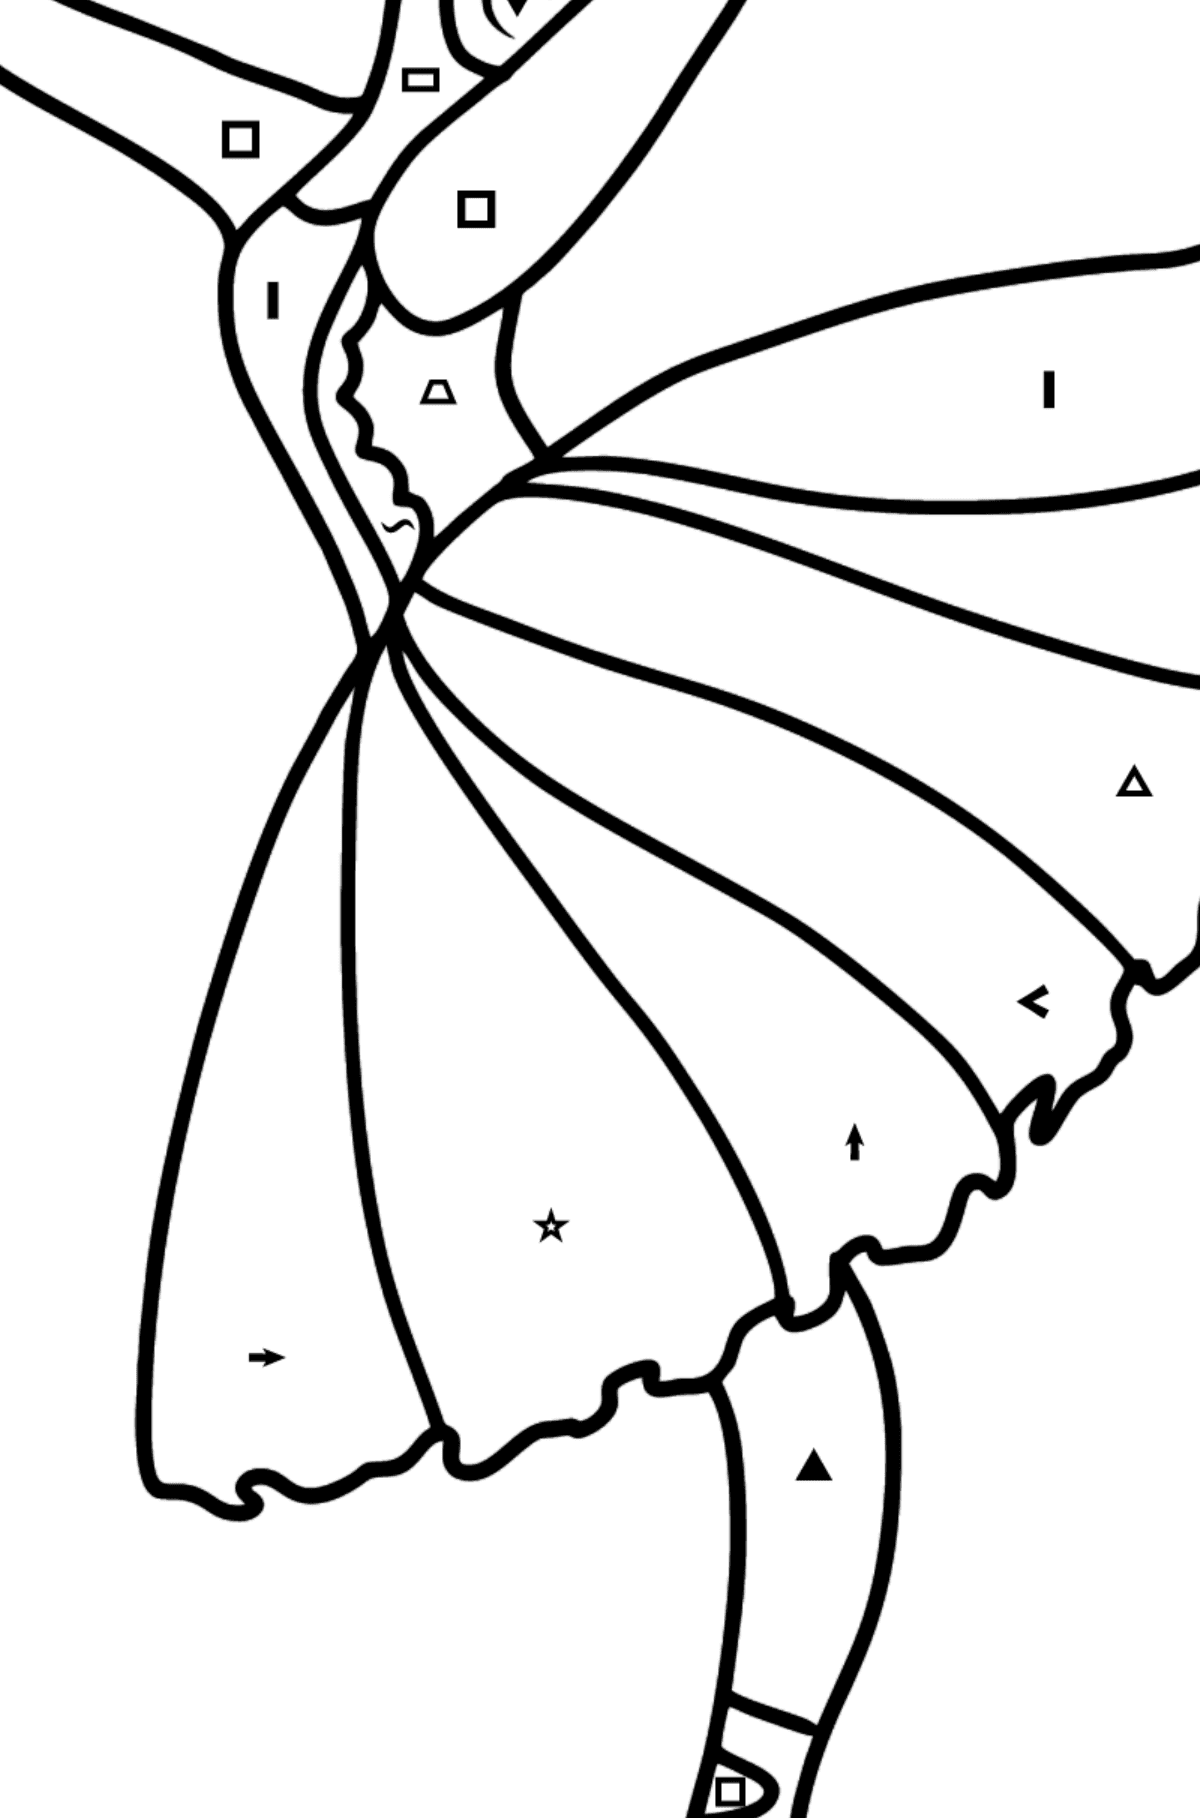 Beautiful ballerina coloring page - Coloring by Symbols and Geometric Shapes for Kids